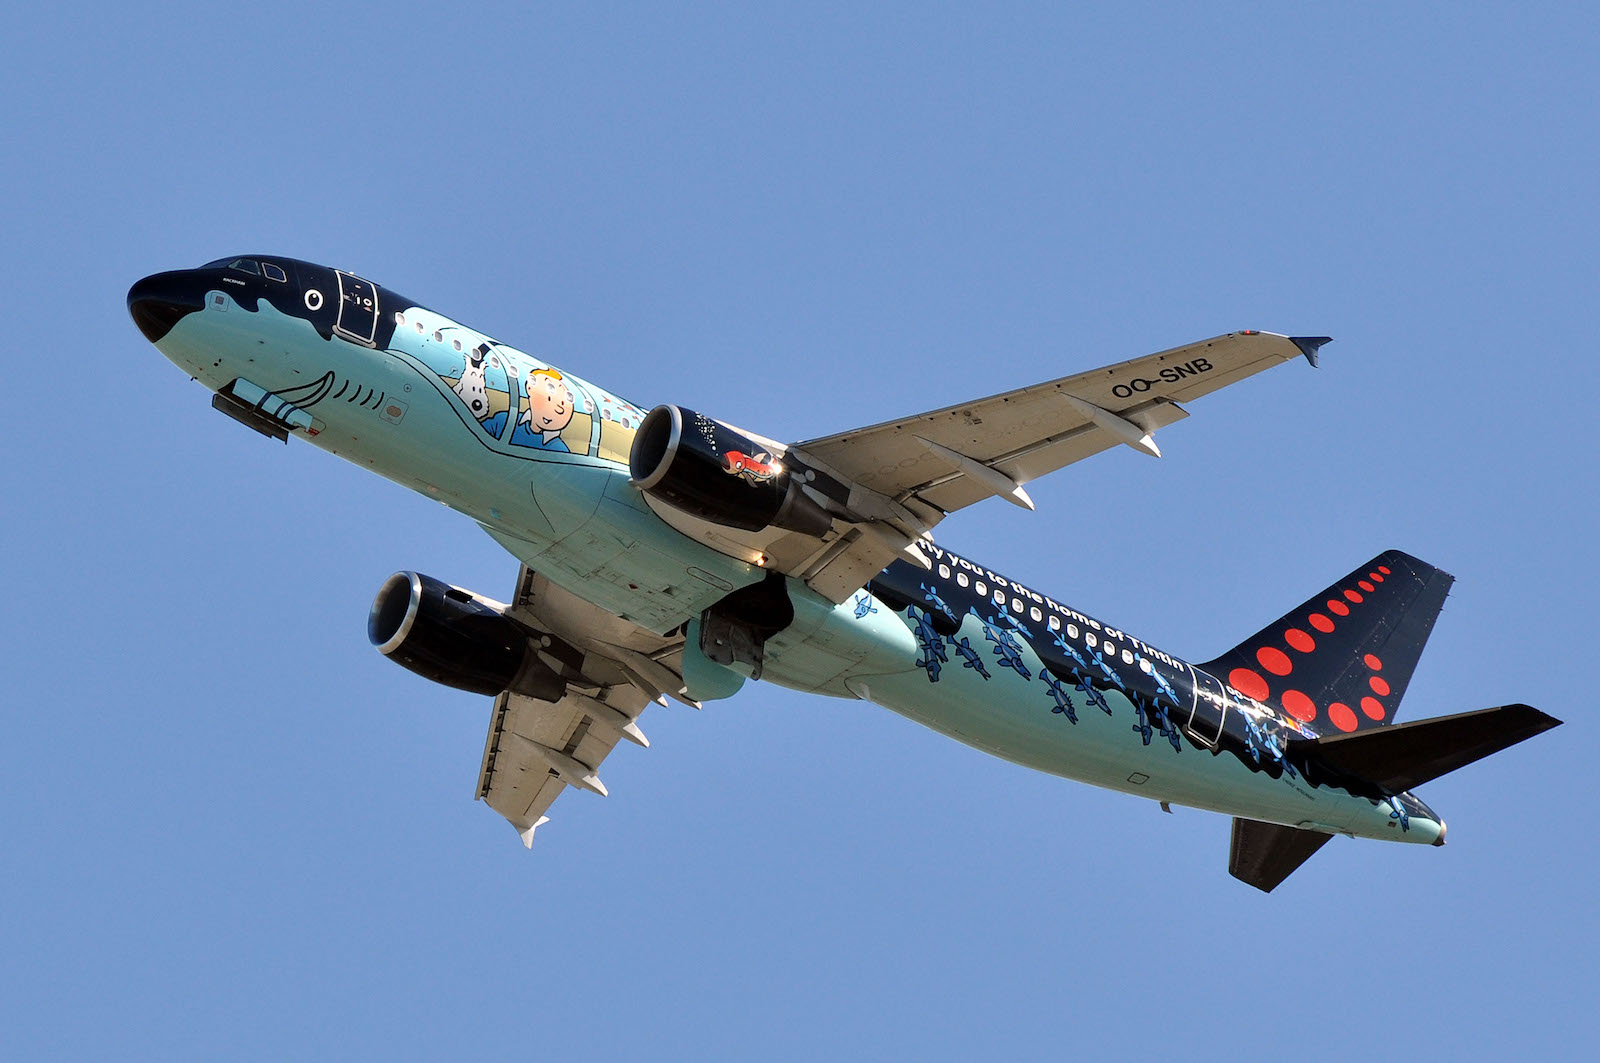 Brussels Airlines of Belgium